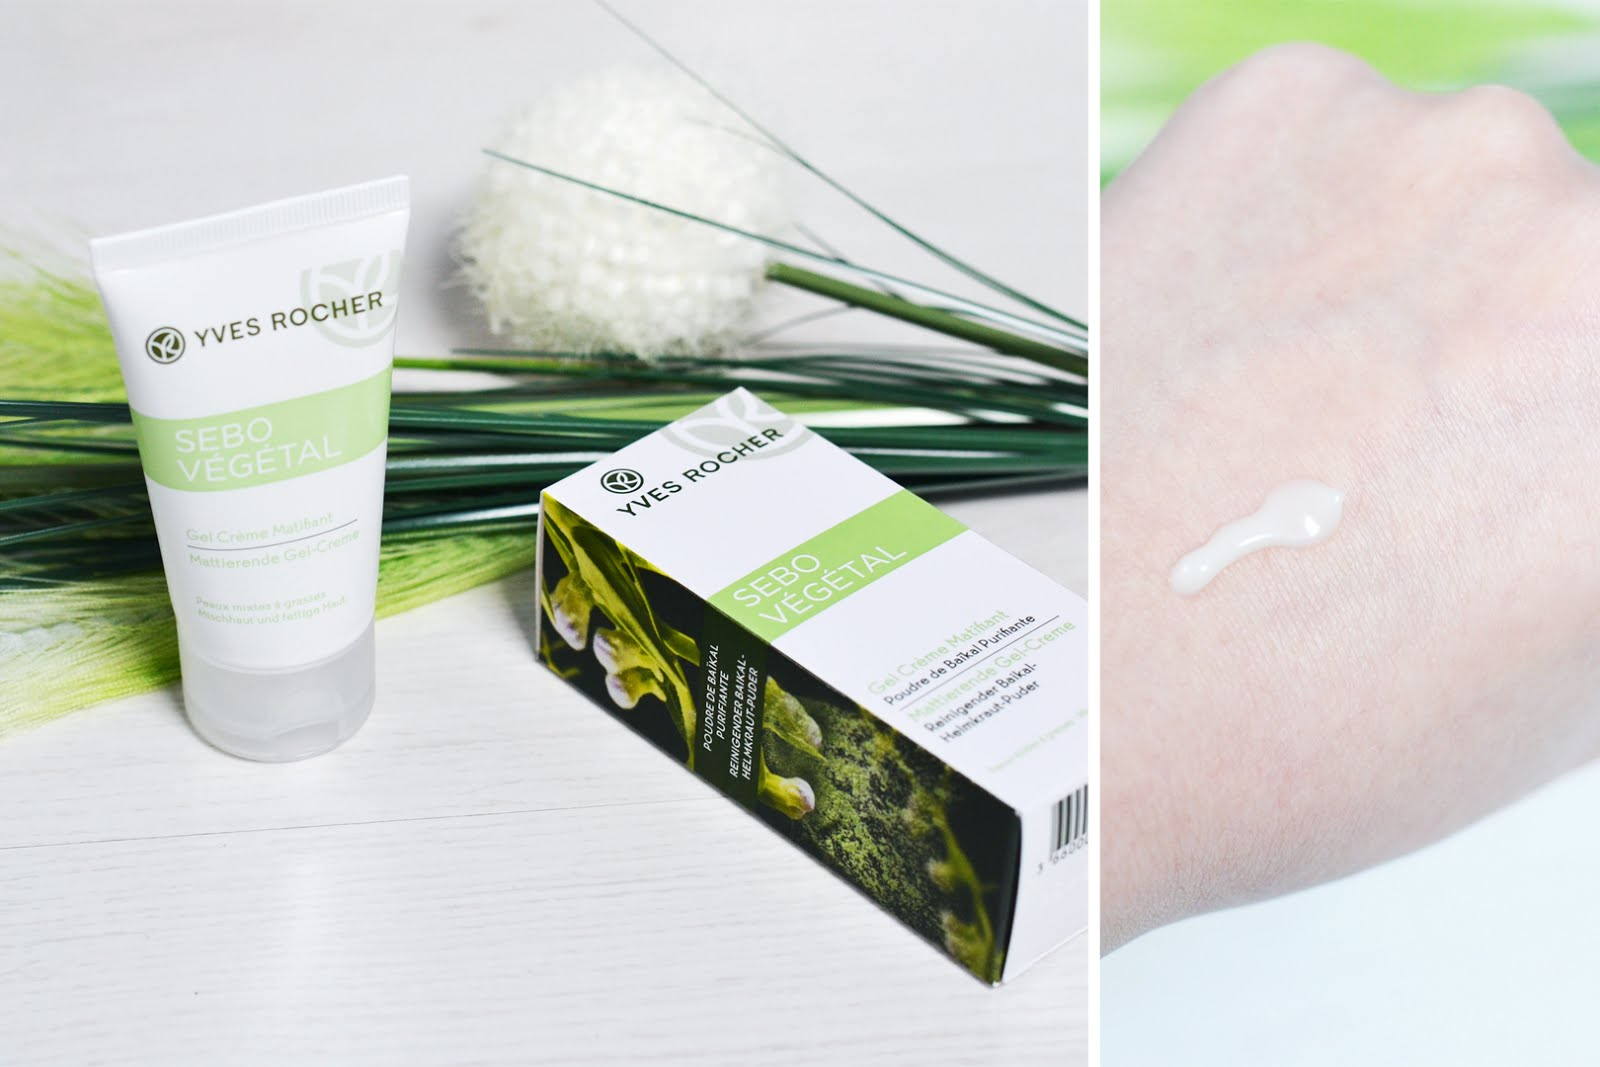 Yves rocher, Sebo vegetal, face wash, day cream, dag creme, belgische blogger, belgian blogger